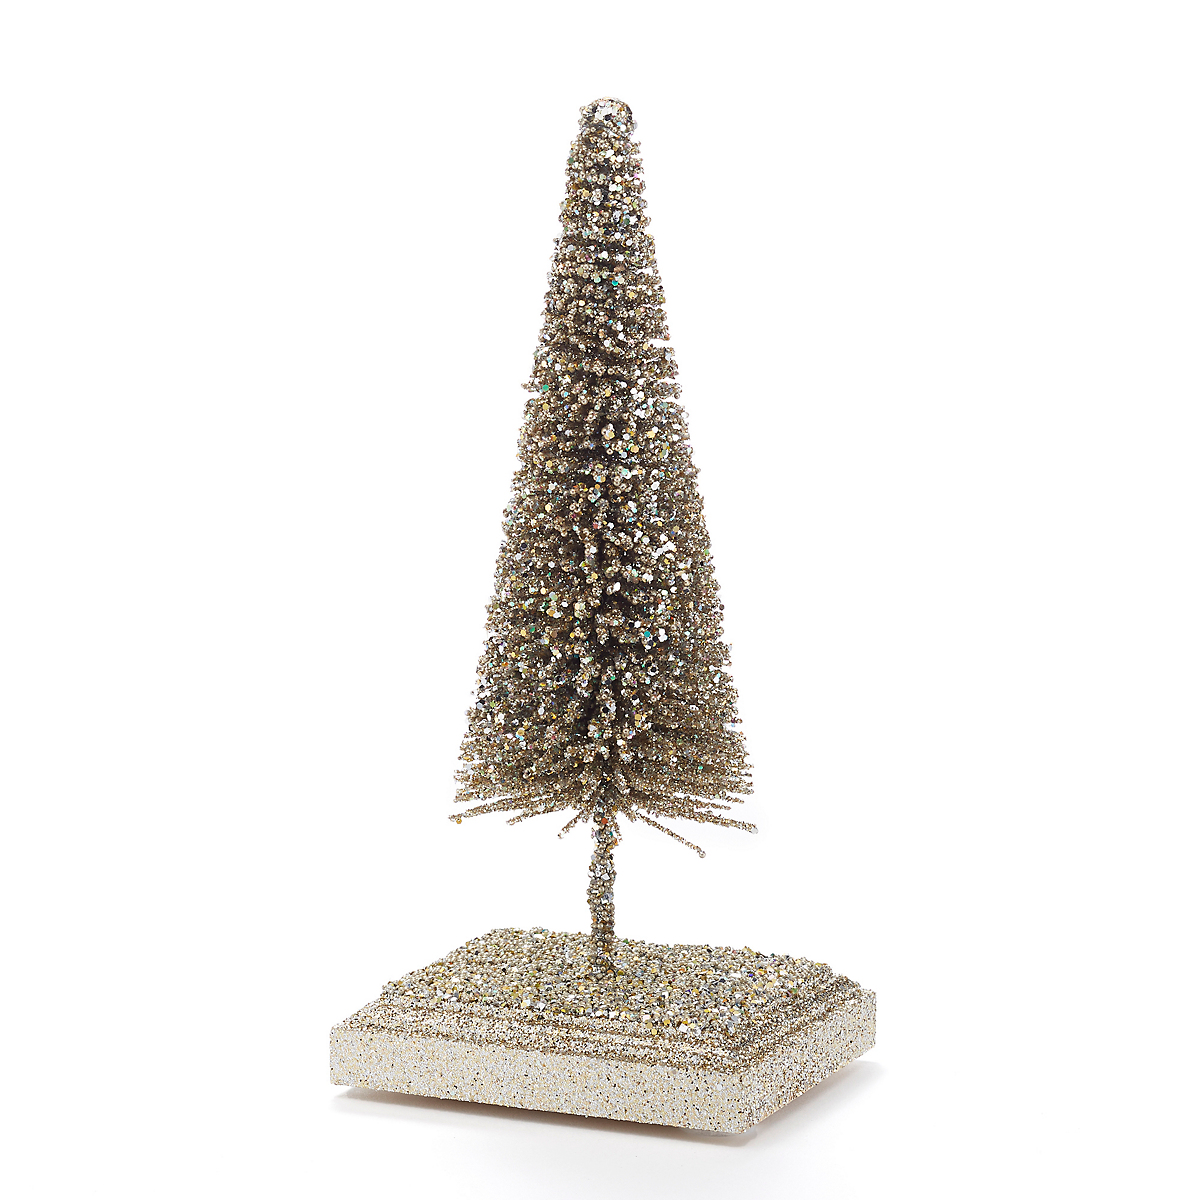 "Ino Schaller  9"" Tree on Square Stand"